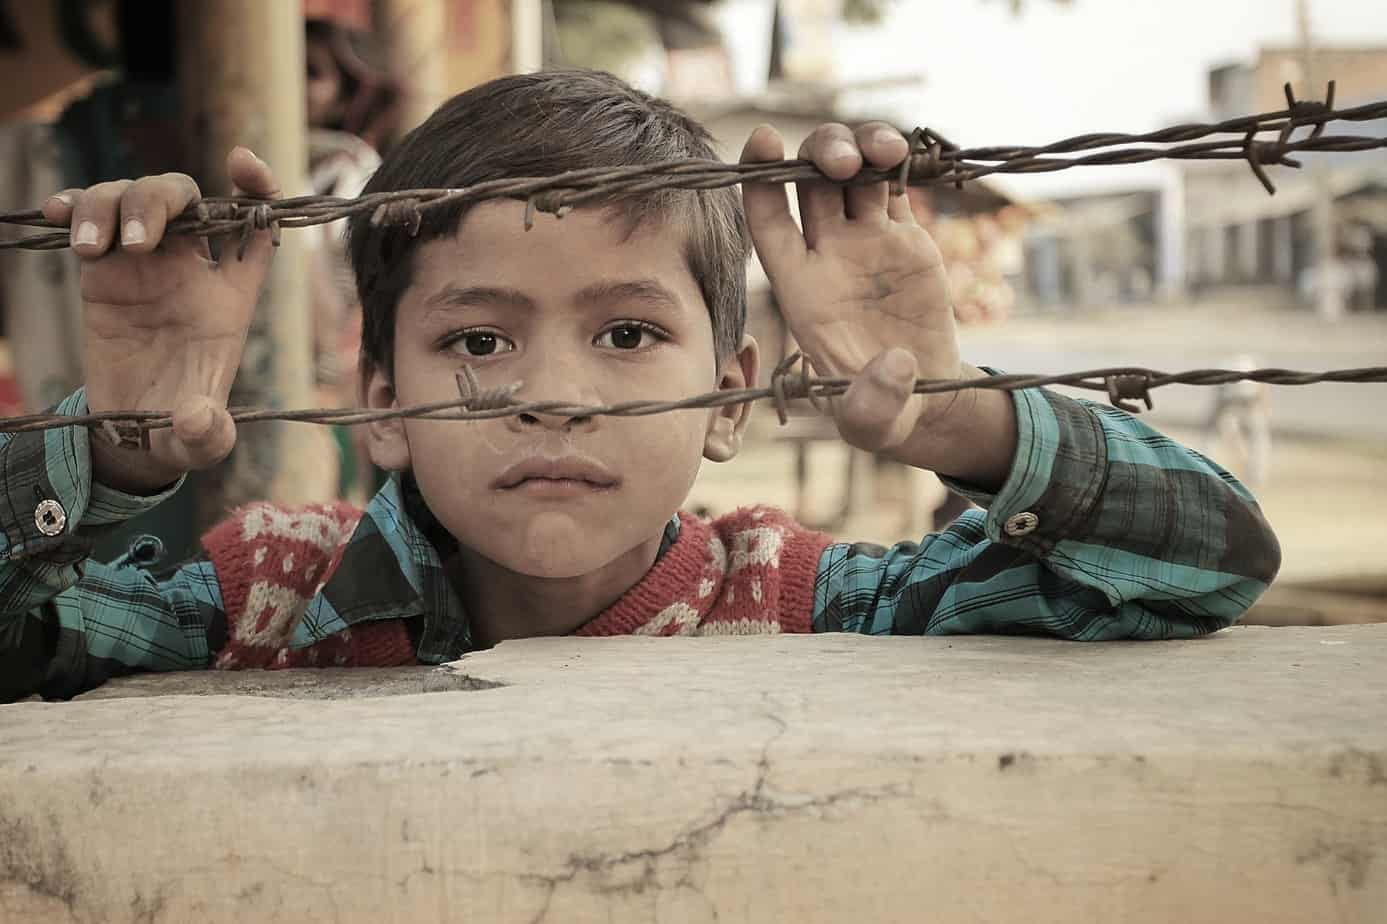 An Indian Child looking into barbwire fence